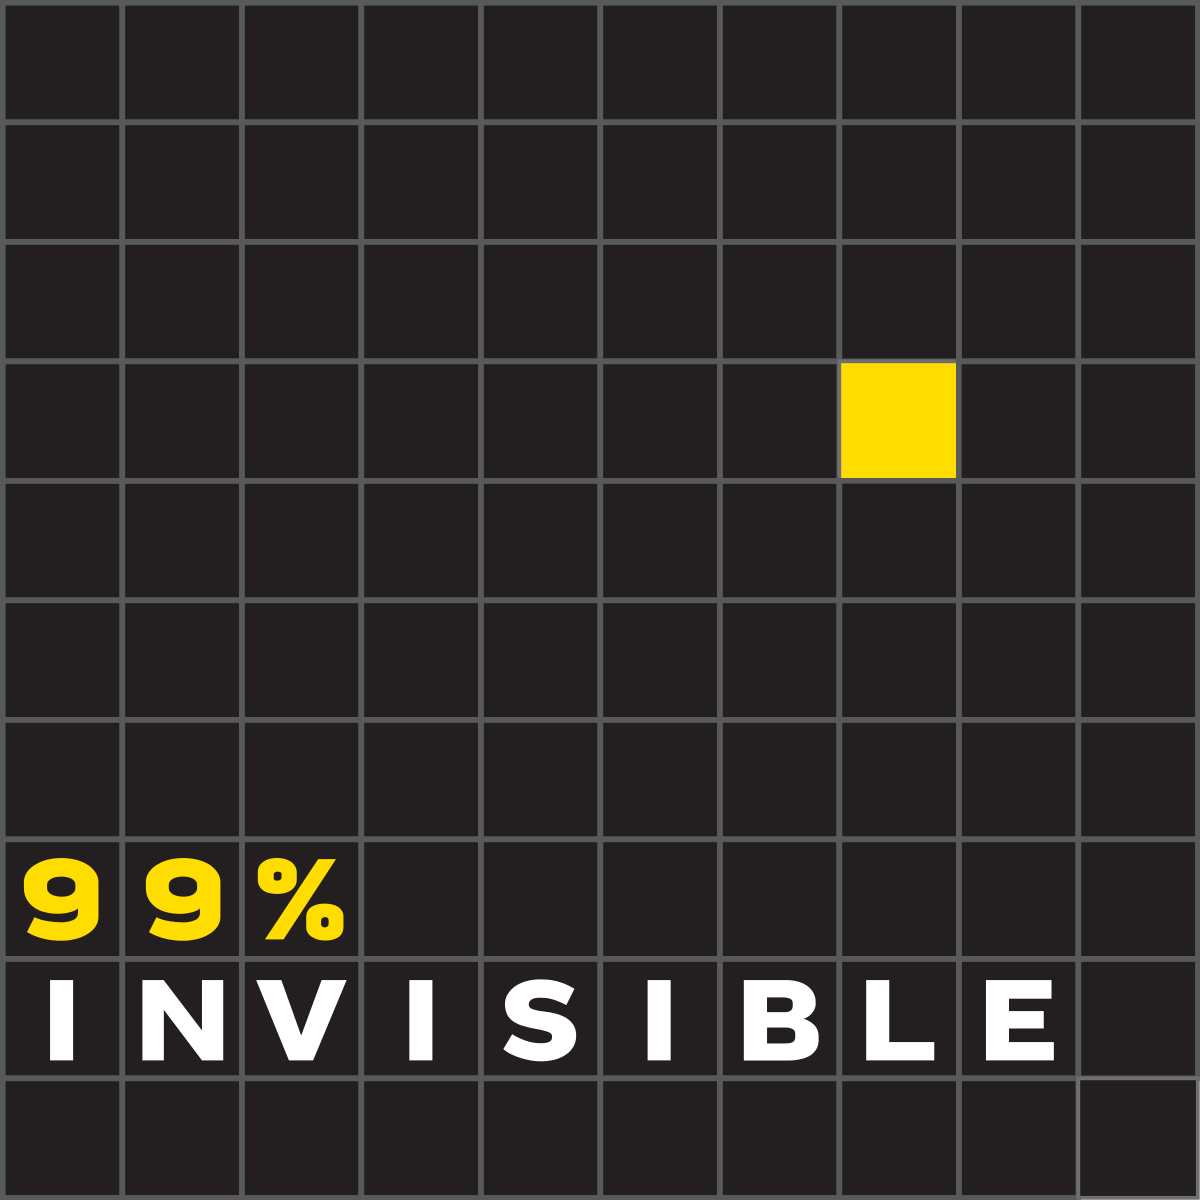 99% Invisible: a top design podcast by Roman Mars